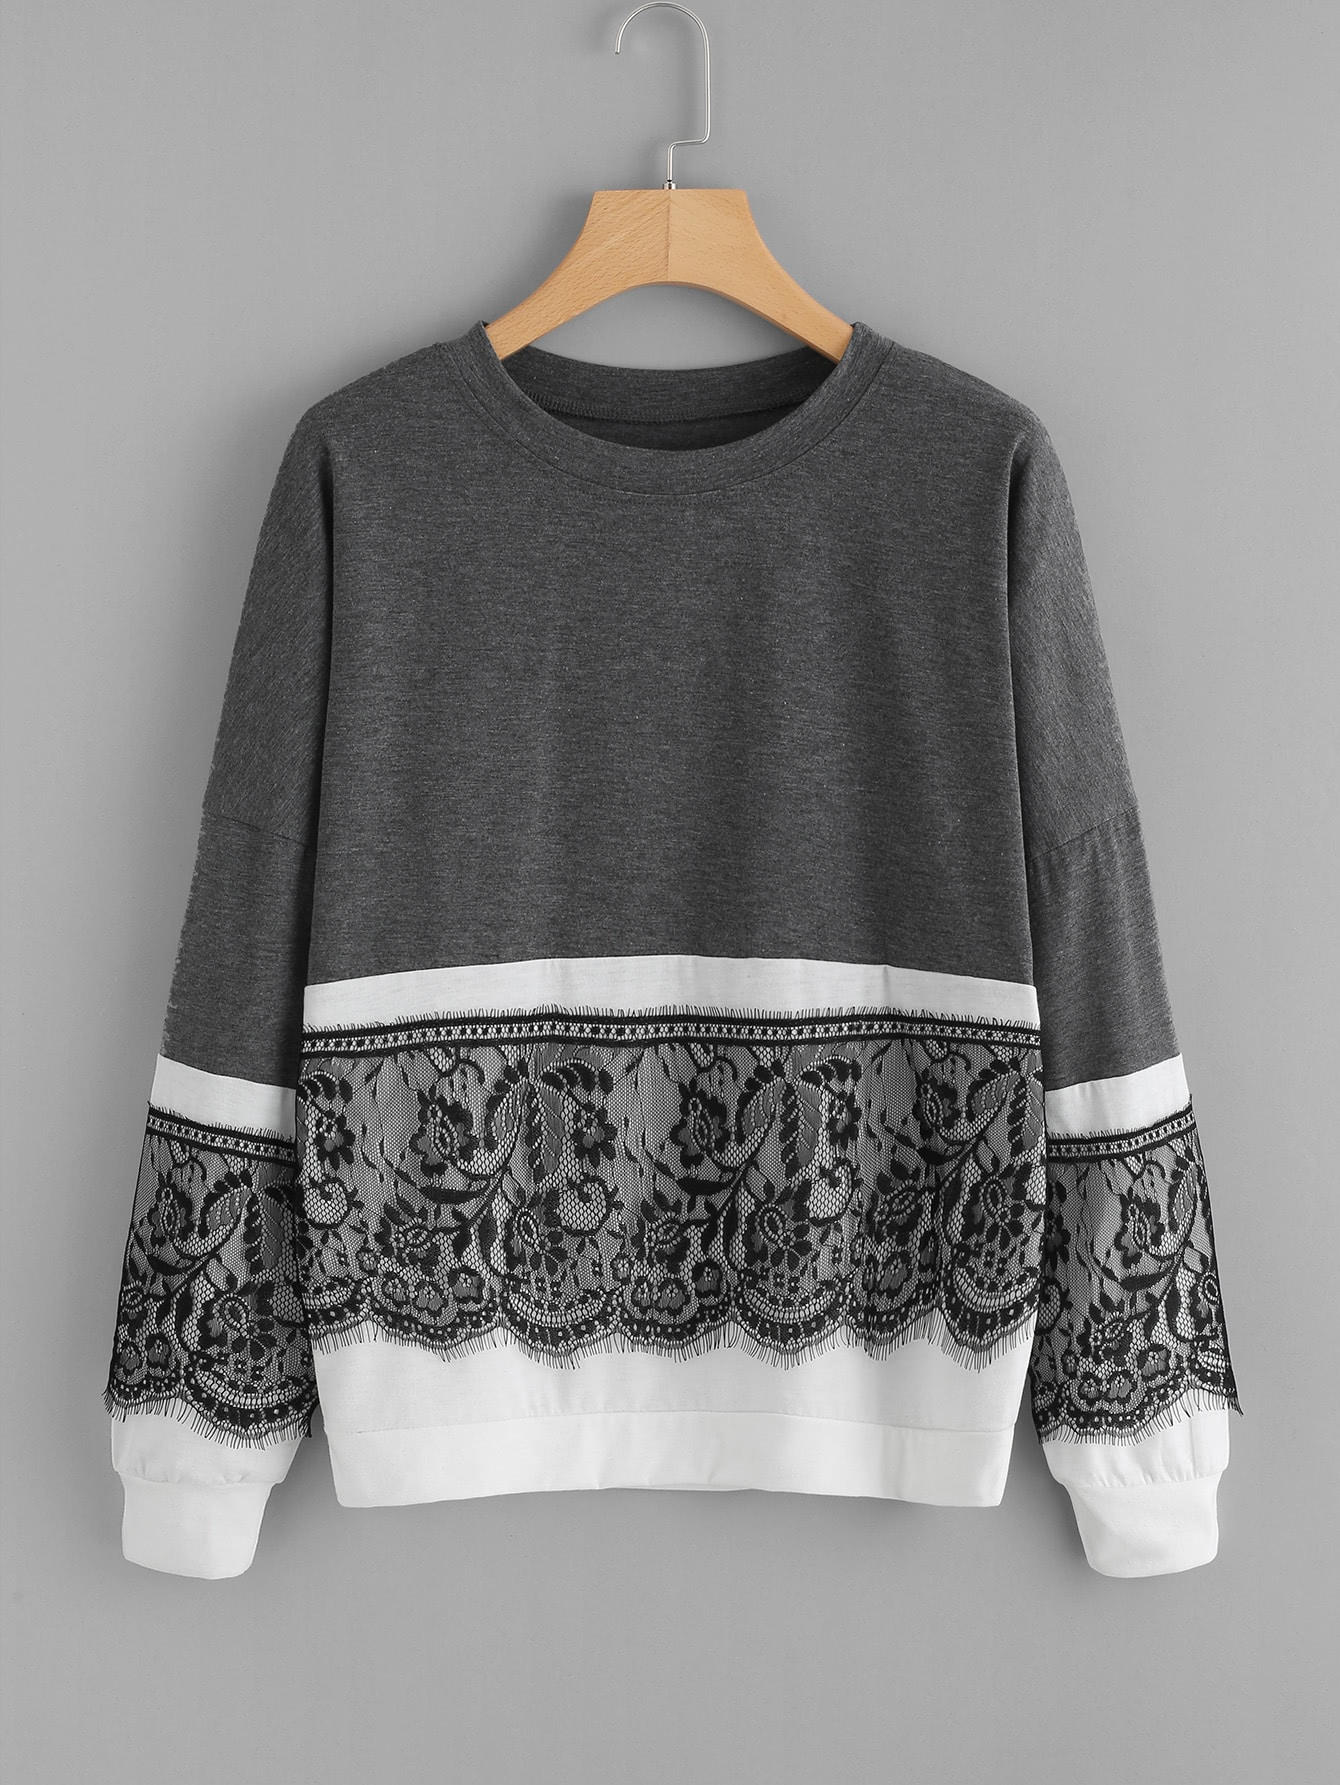 Contrast Eyelash Lace Two Tone Pullover contrast embroidered two tone plush top